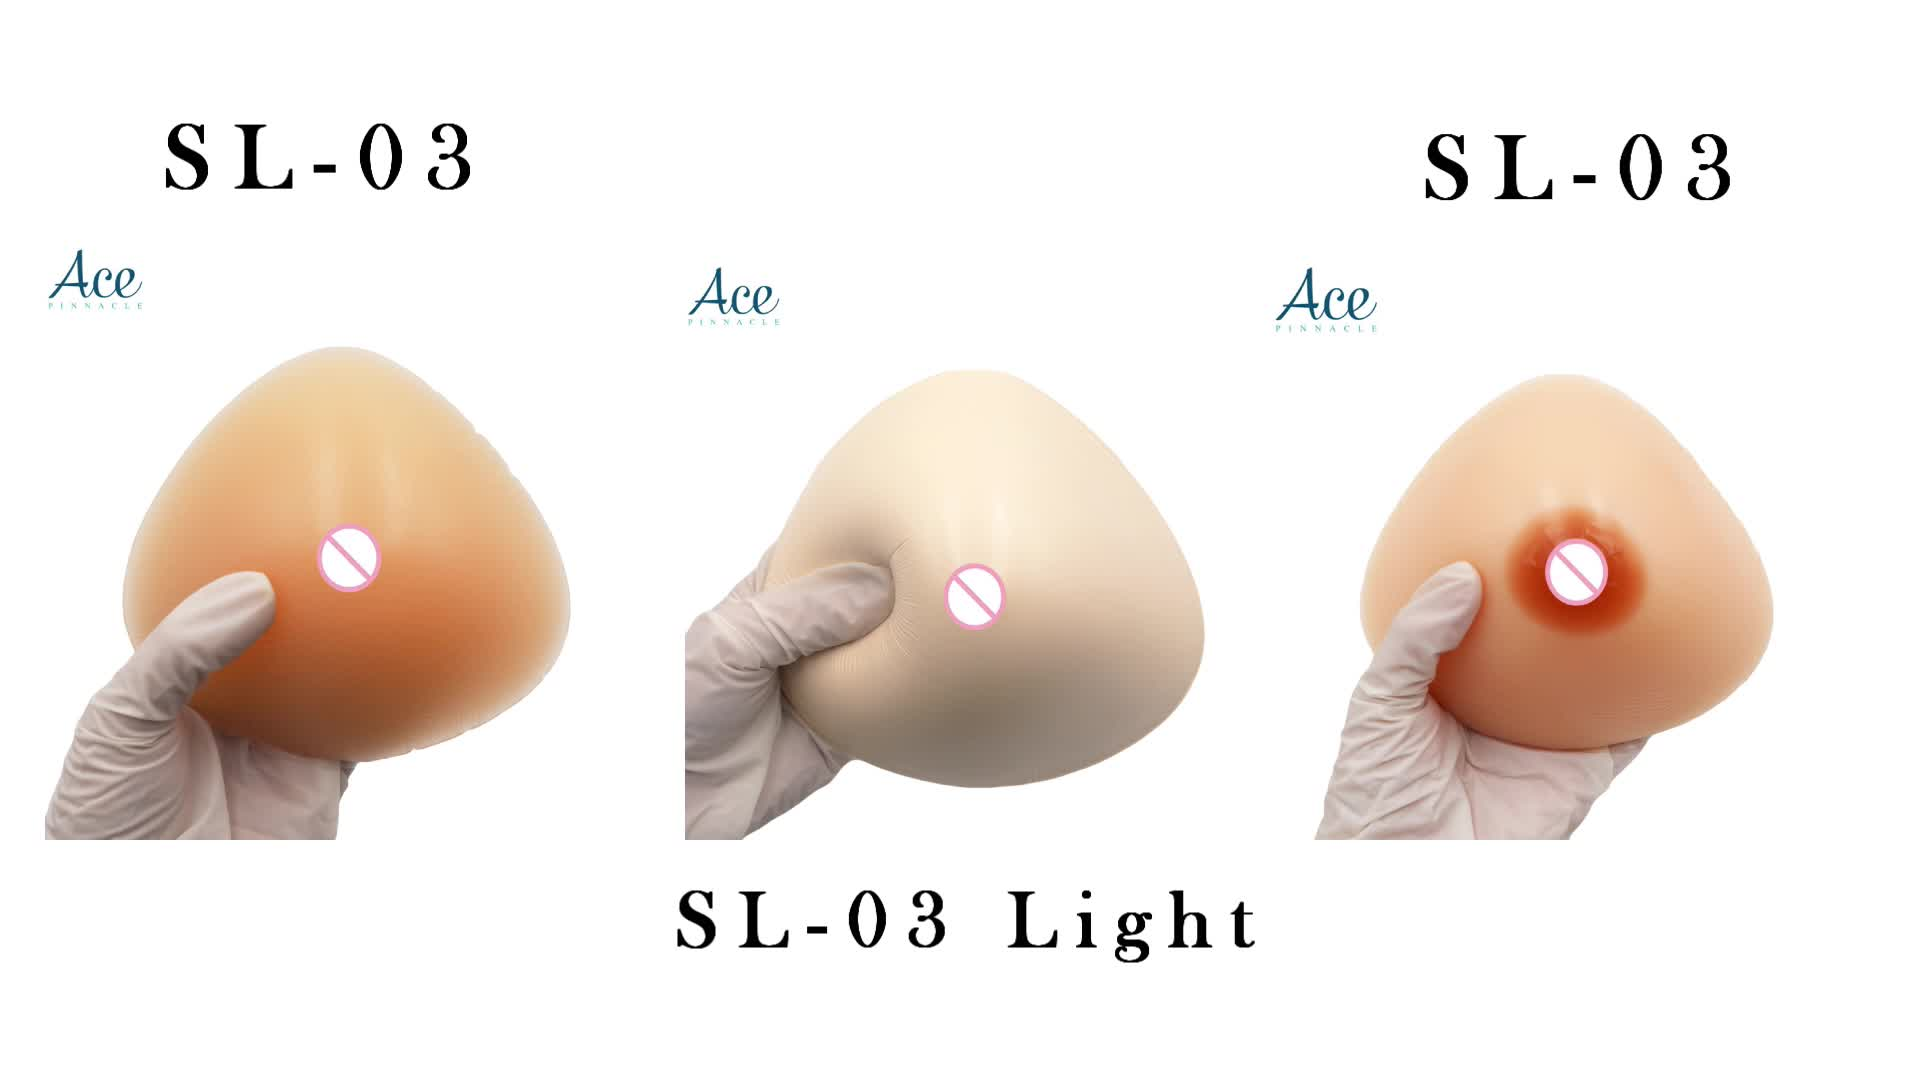 135 g light weight Mastectomy Prosthesis Armpit Extension Postoperative Silicone Breast Forms for Breast Surgery Cross dresser